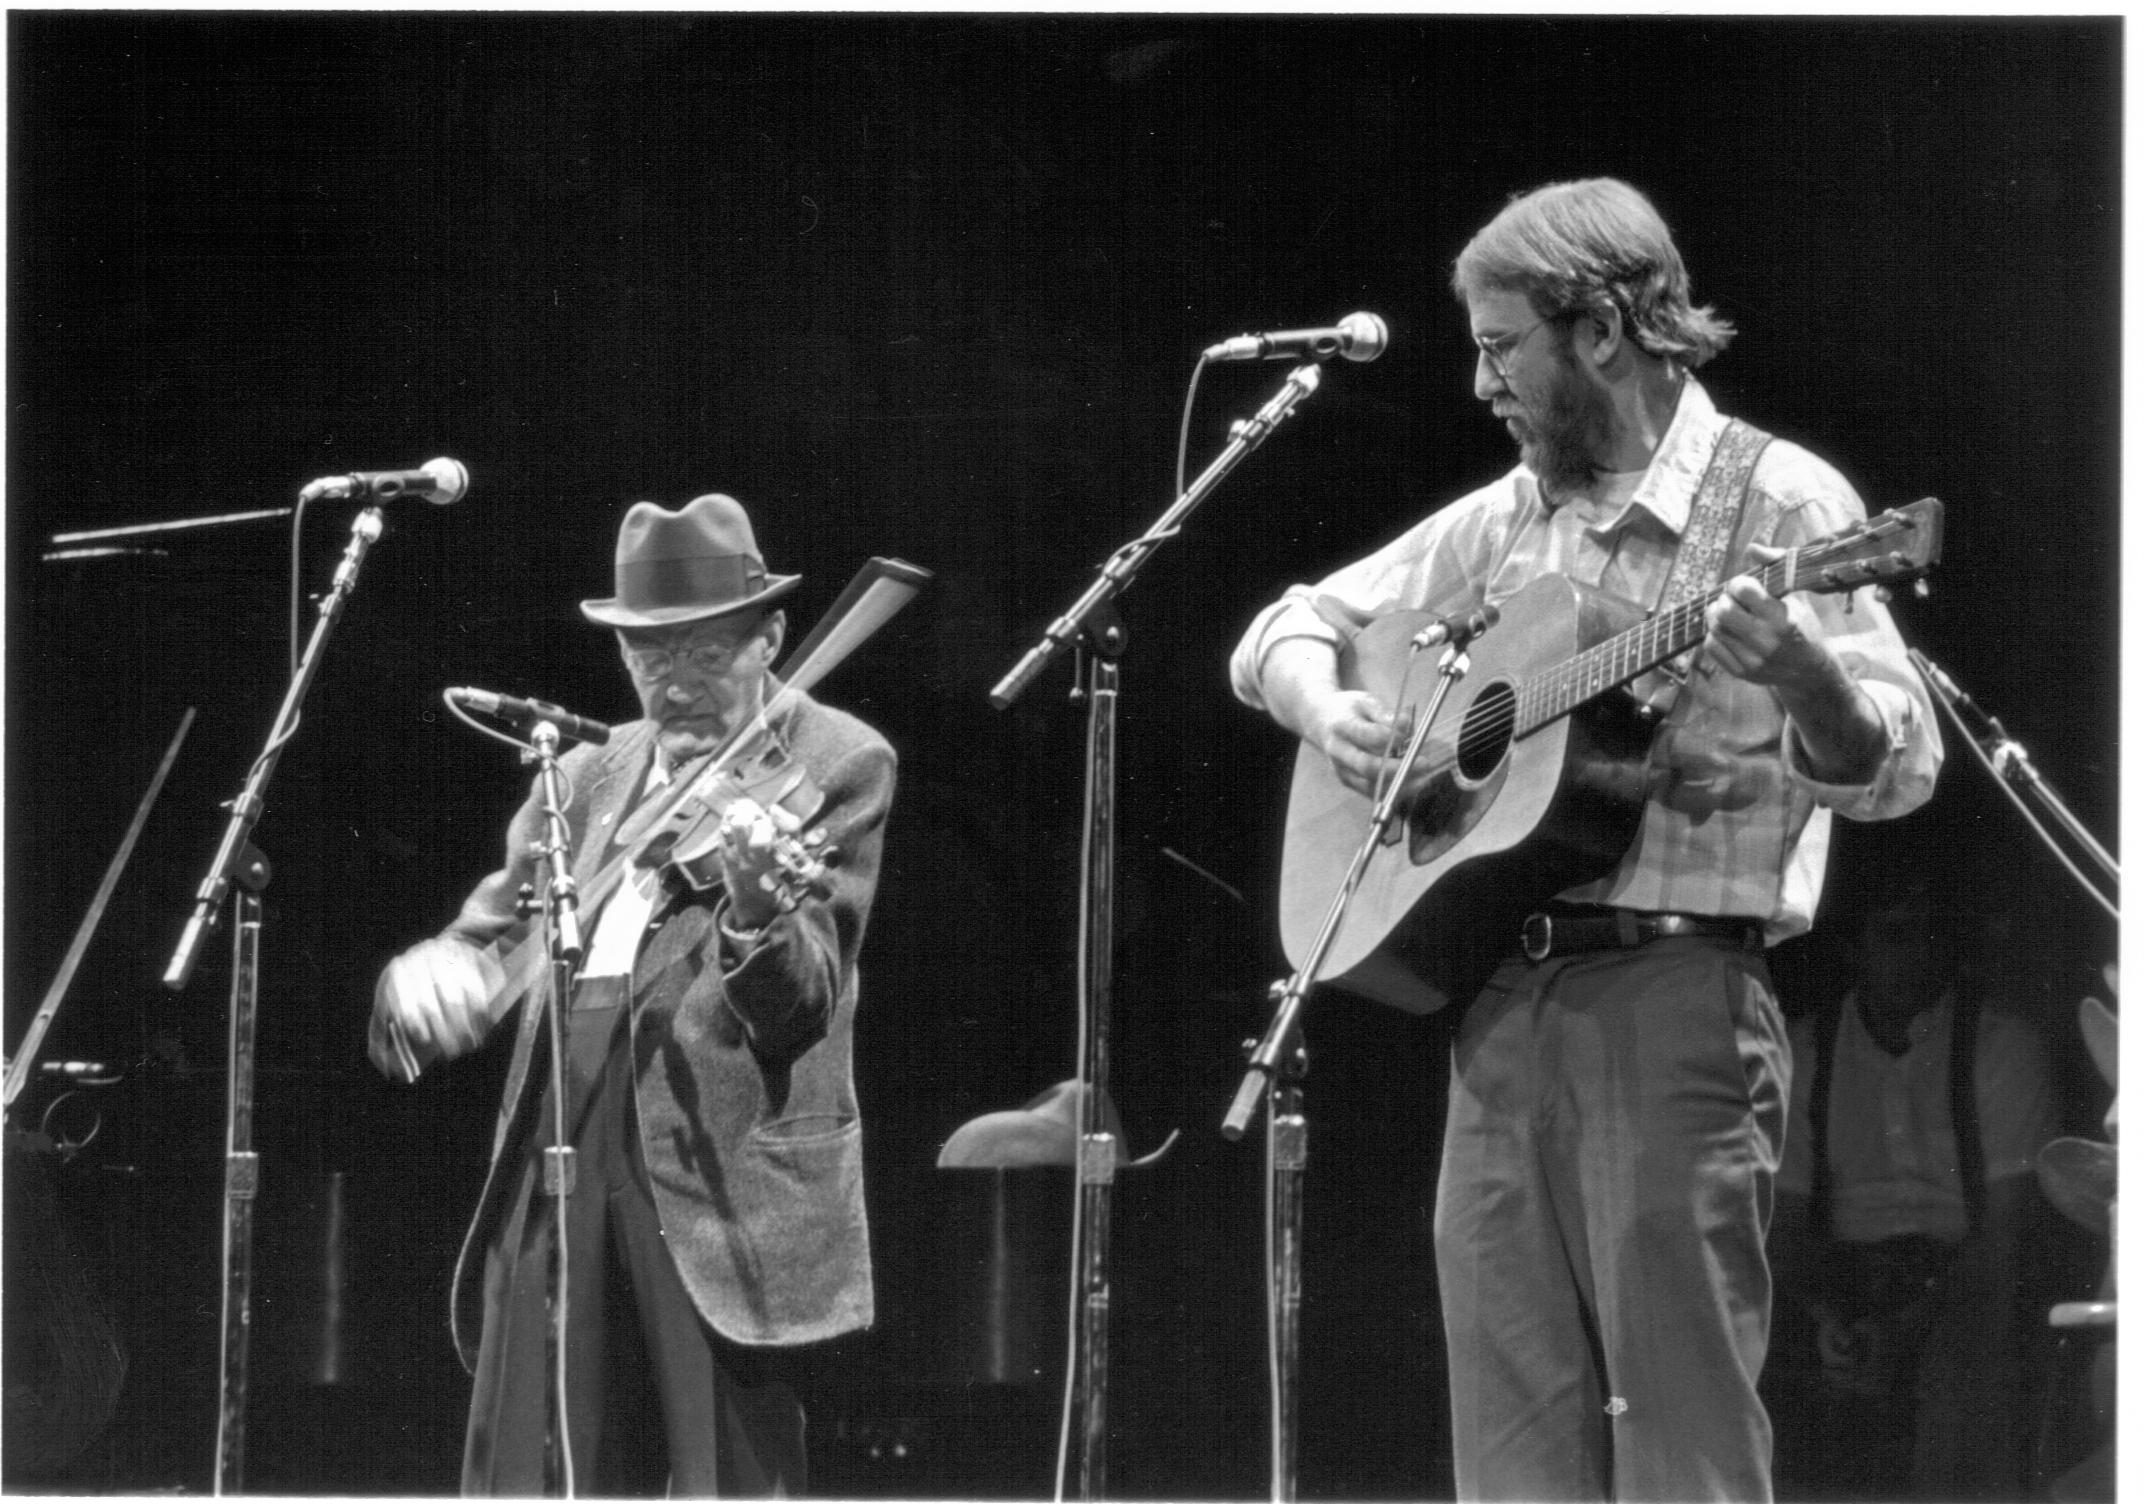 George Lee Hawkins and John Harrod at the Kentucky Center for the Arts